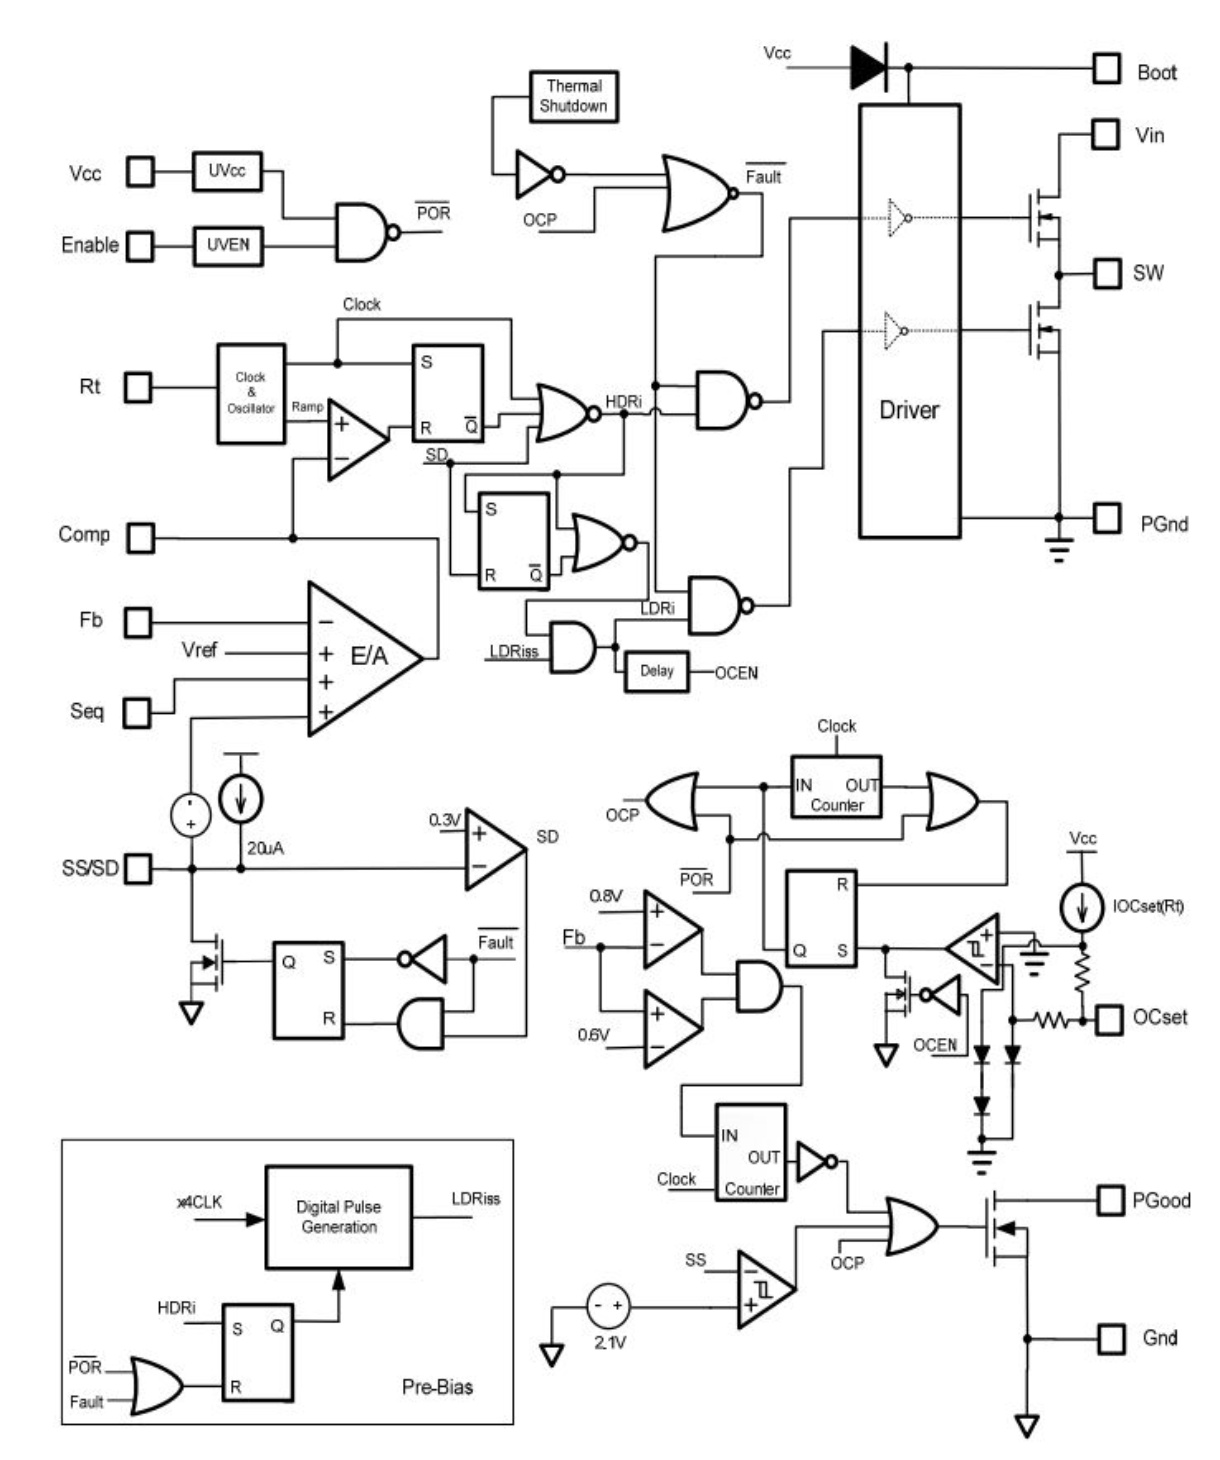 Ground Force Drifter Wiring Diagram - Wiring Diagram Database on sincgars radio configurations diagrams, pinout diagrams, motor diagrams, led circuit diagrams, internet of things diagrams, engine diagrams, hvac diagrams, honda motorcycle repair diagrams, smart car diagrams, troubleshooting diagrams, electronic circuit diagrams, friendship bracelet diagrams, gmc fuse box diagrams, switch diagrams, electrical diagrams, snatch block diagrams, transformer diagrams, battery diagrams, series and parallel circuits diagrams, lighting diagrams,